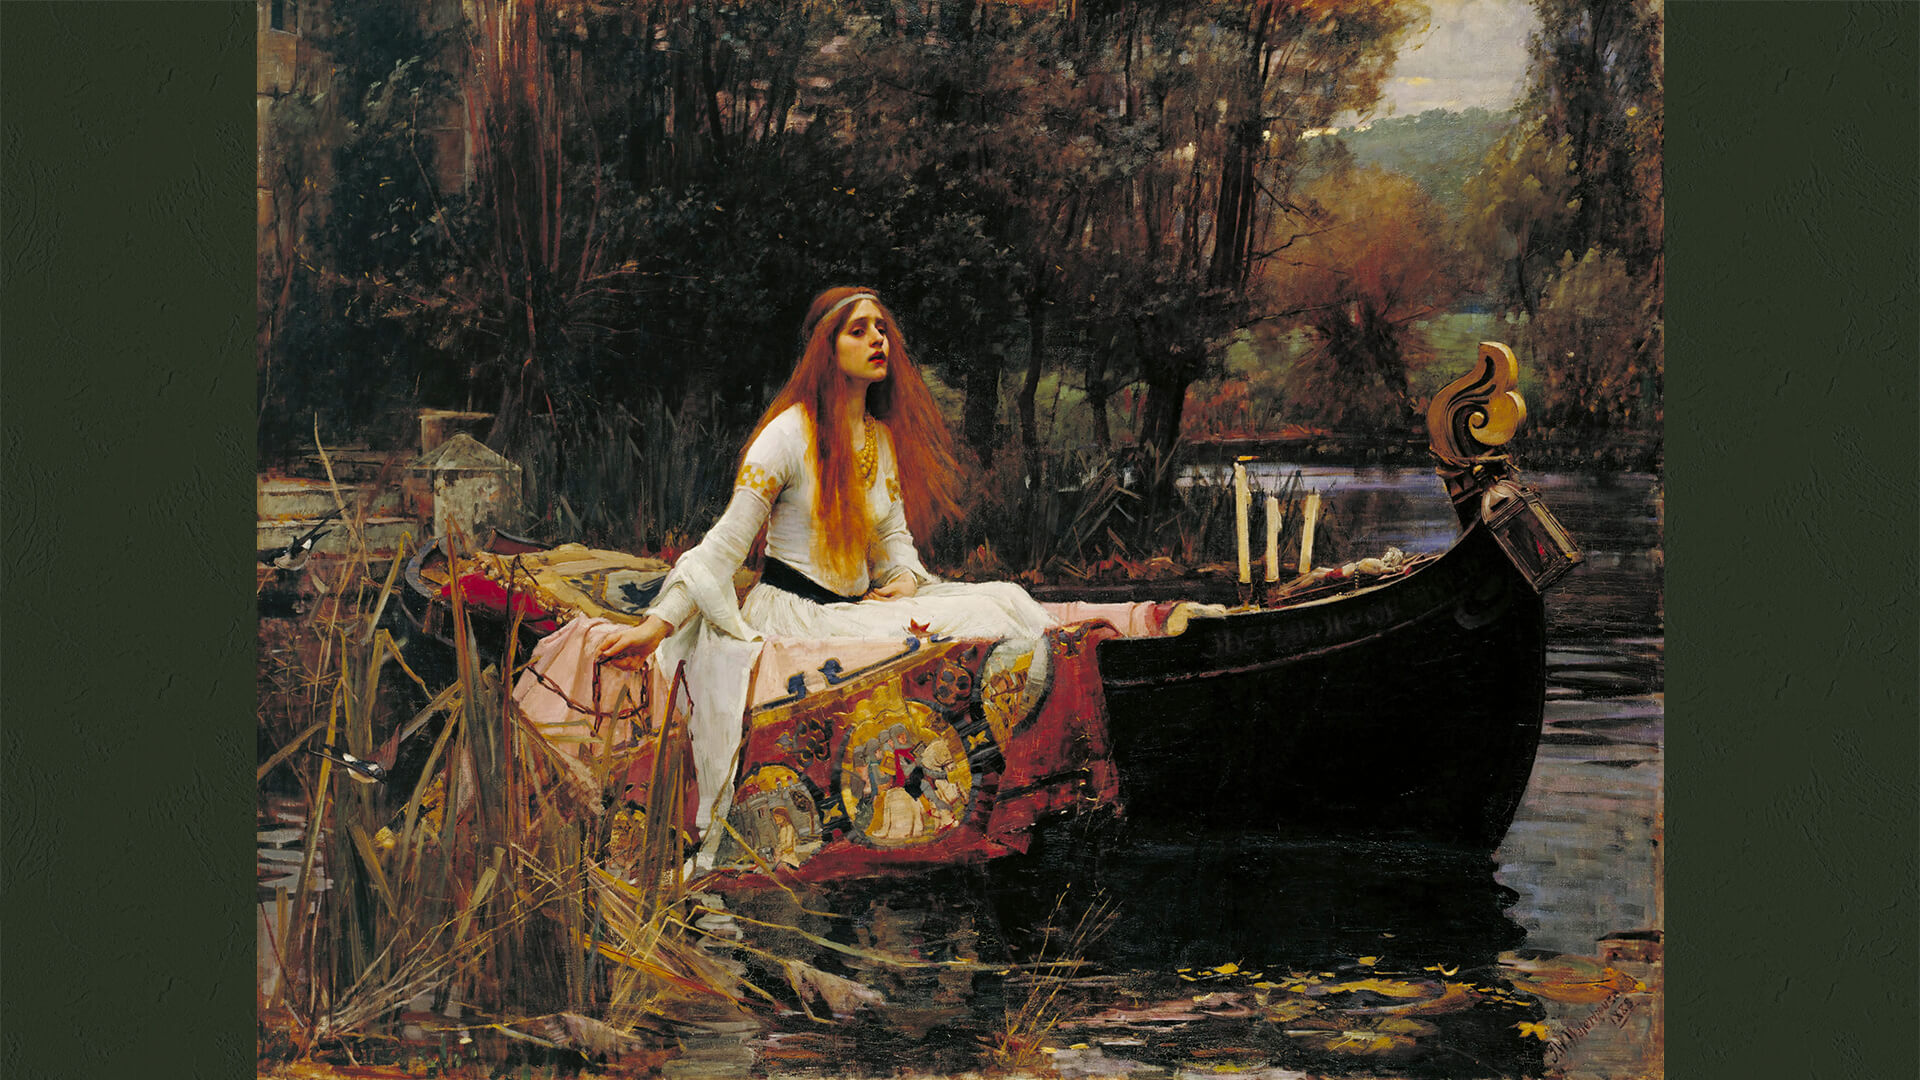 John William Waterhouse-The Lady of Shalott_1920x1080